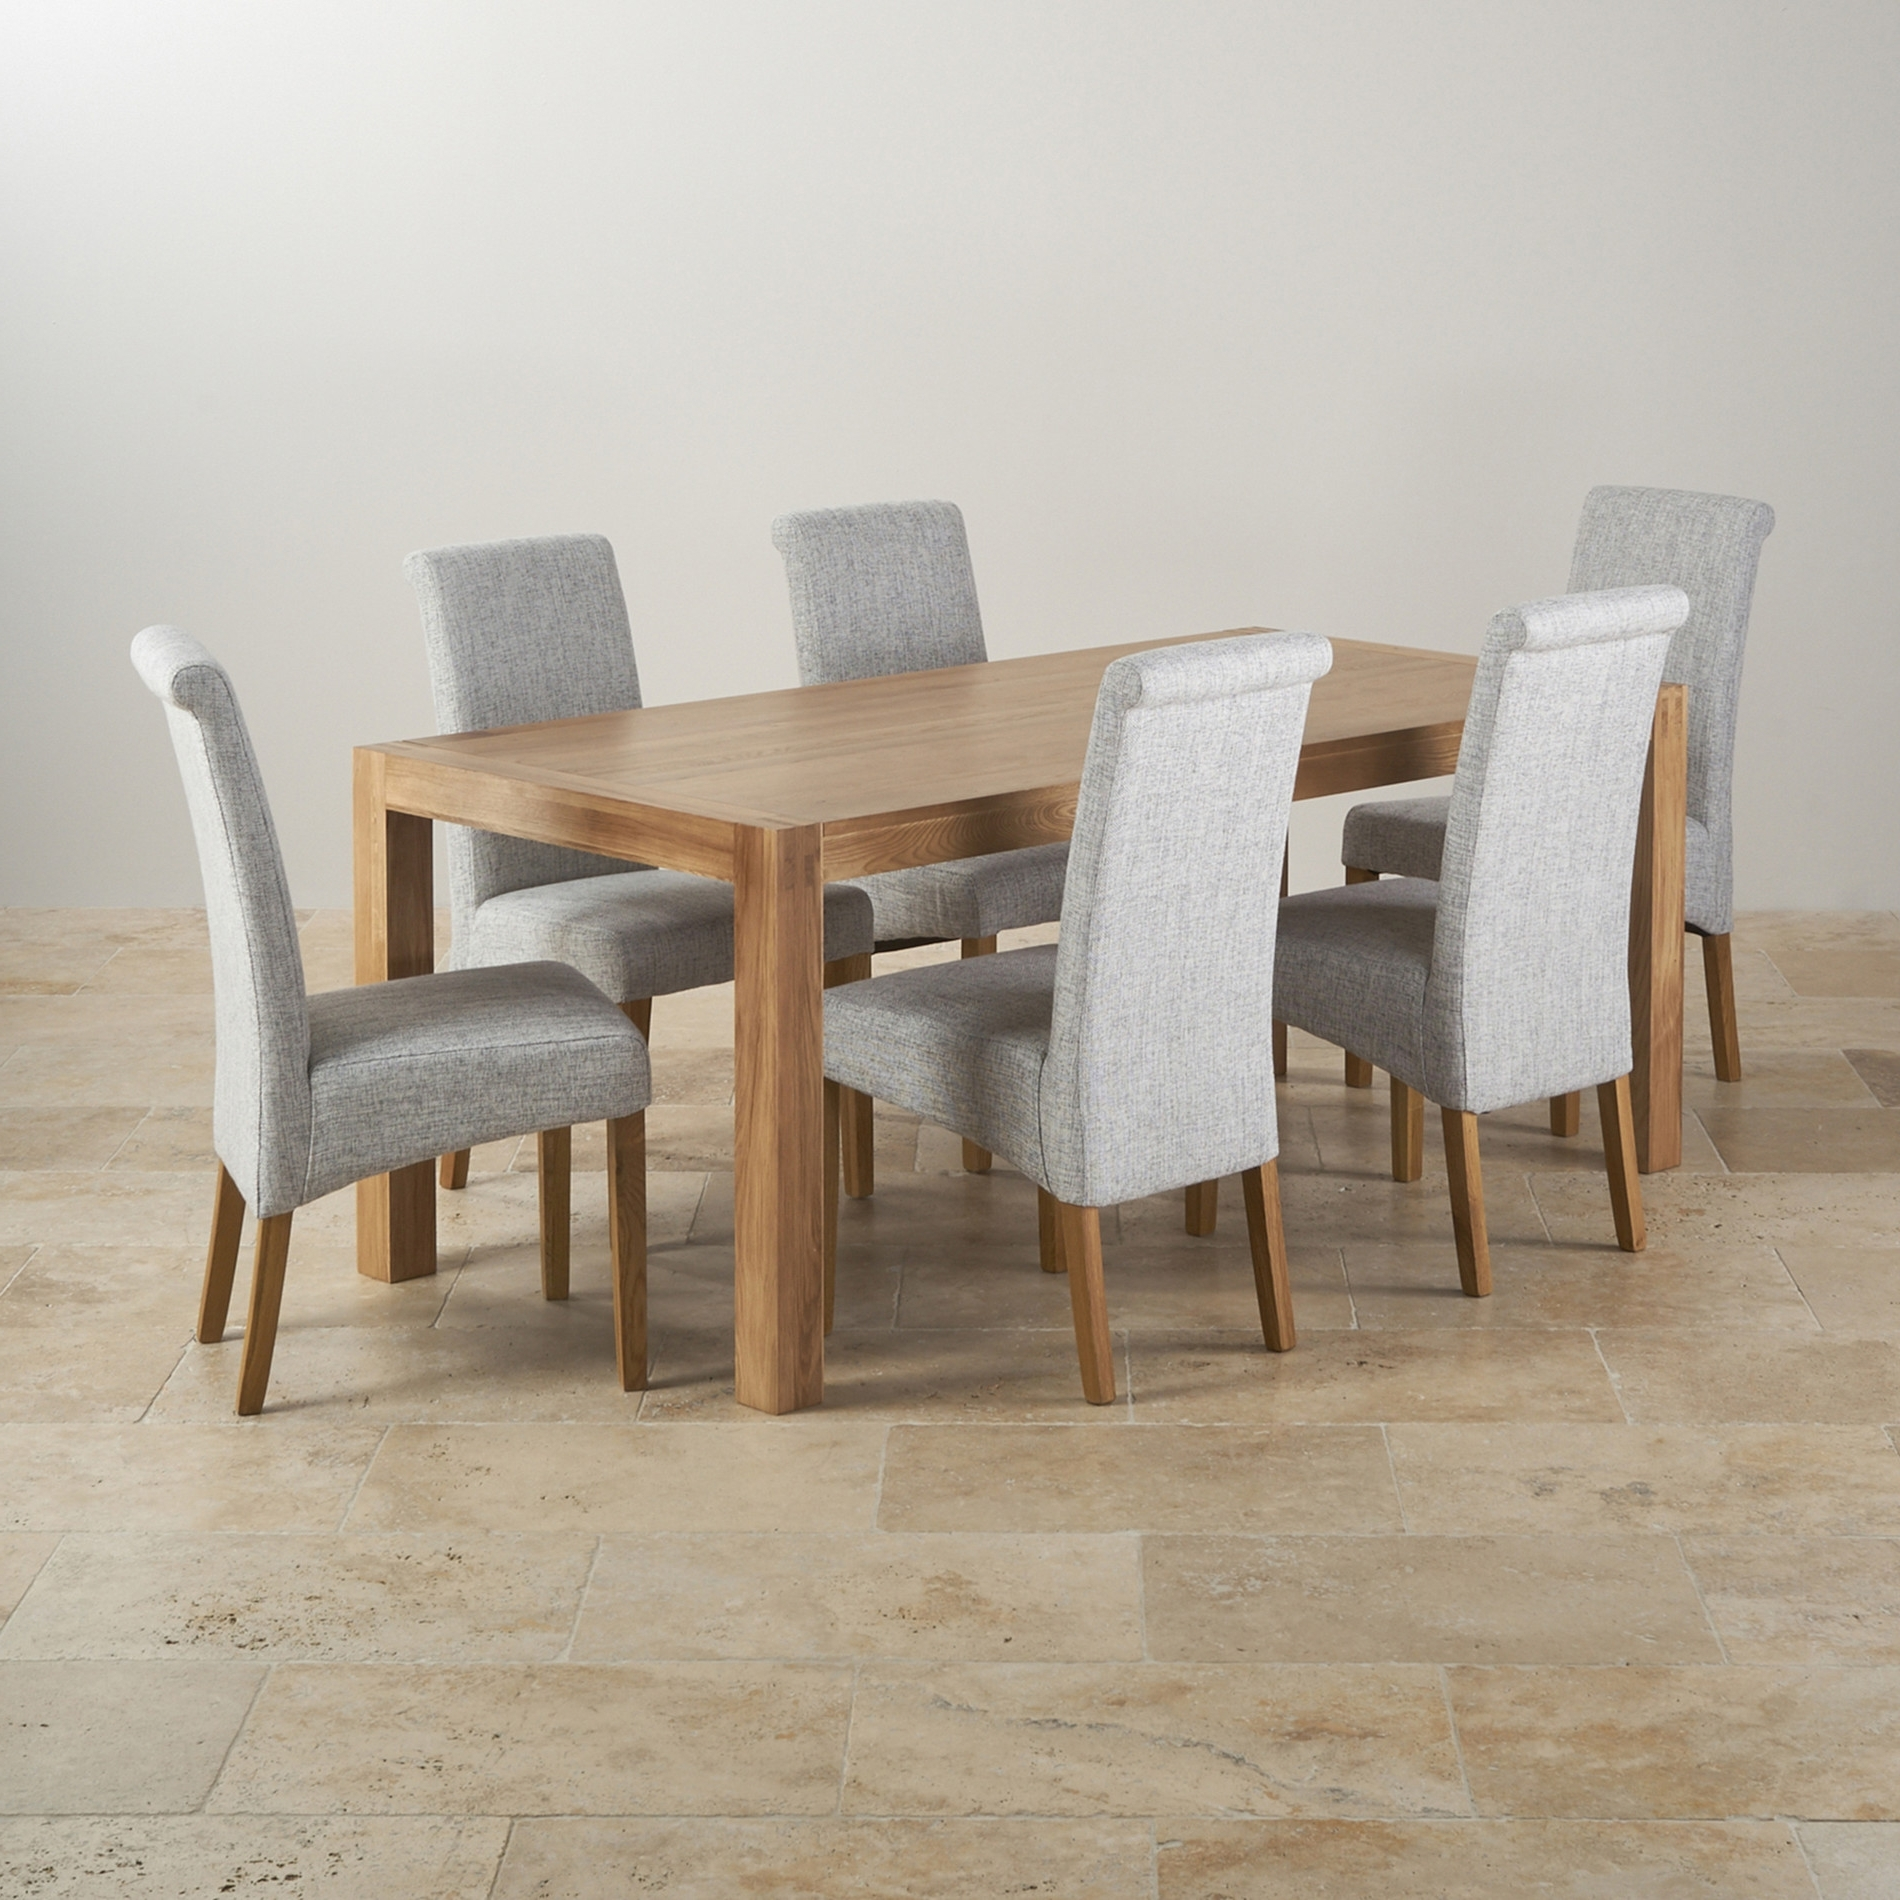 Dining Tables And Fabric Chairs Within Well Known Alto Solid Oak 6Ft Dining Table With 6 Grey Fabric Chairs Ghost (View 23 of 25)